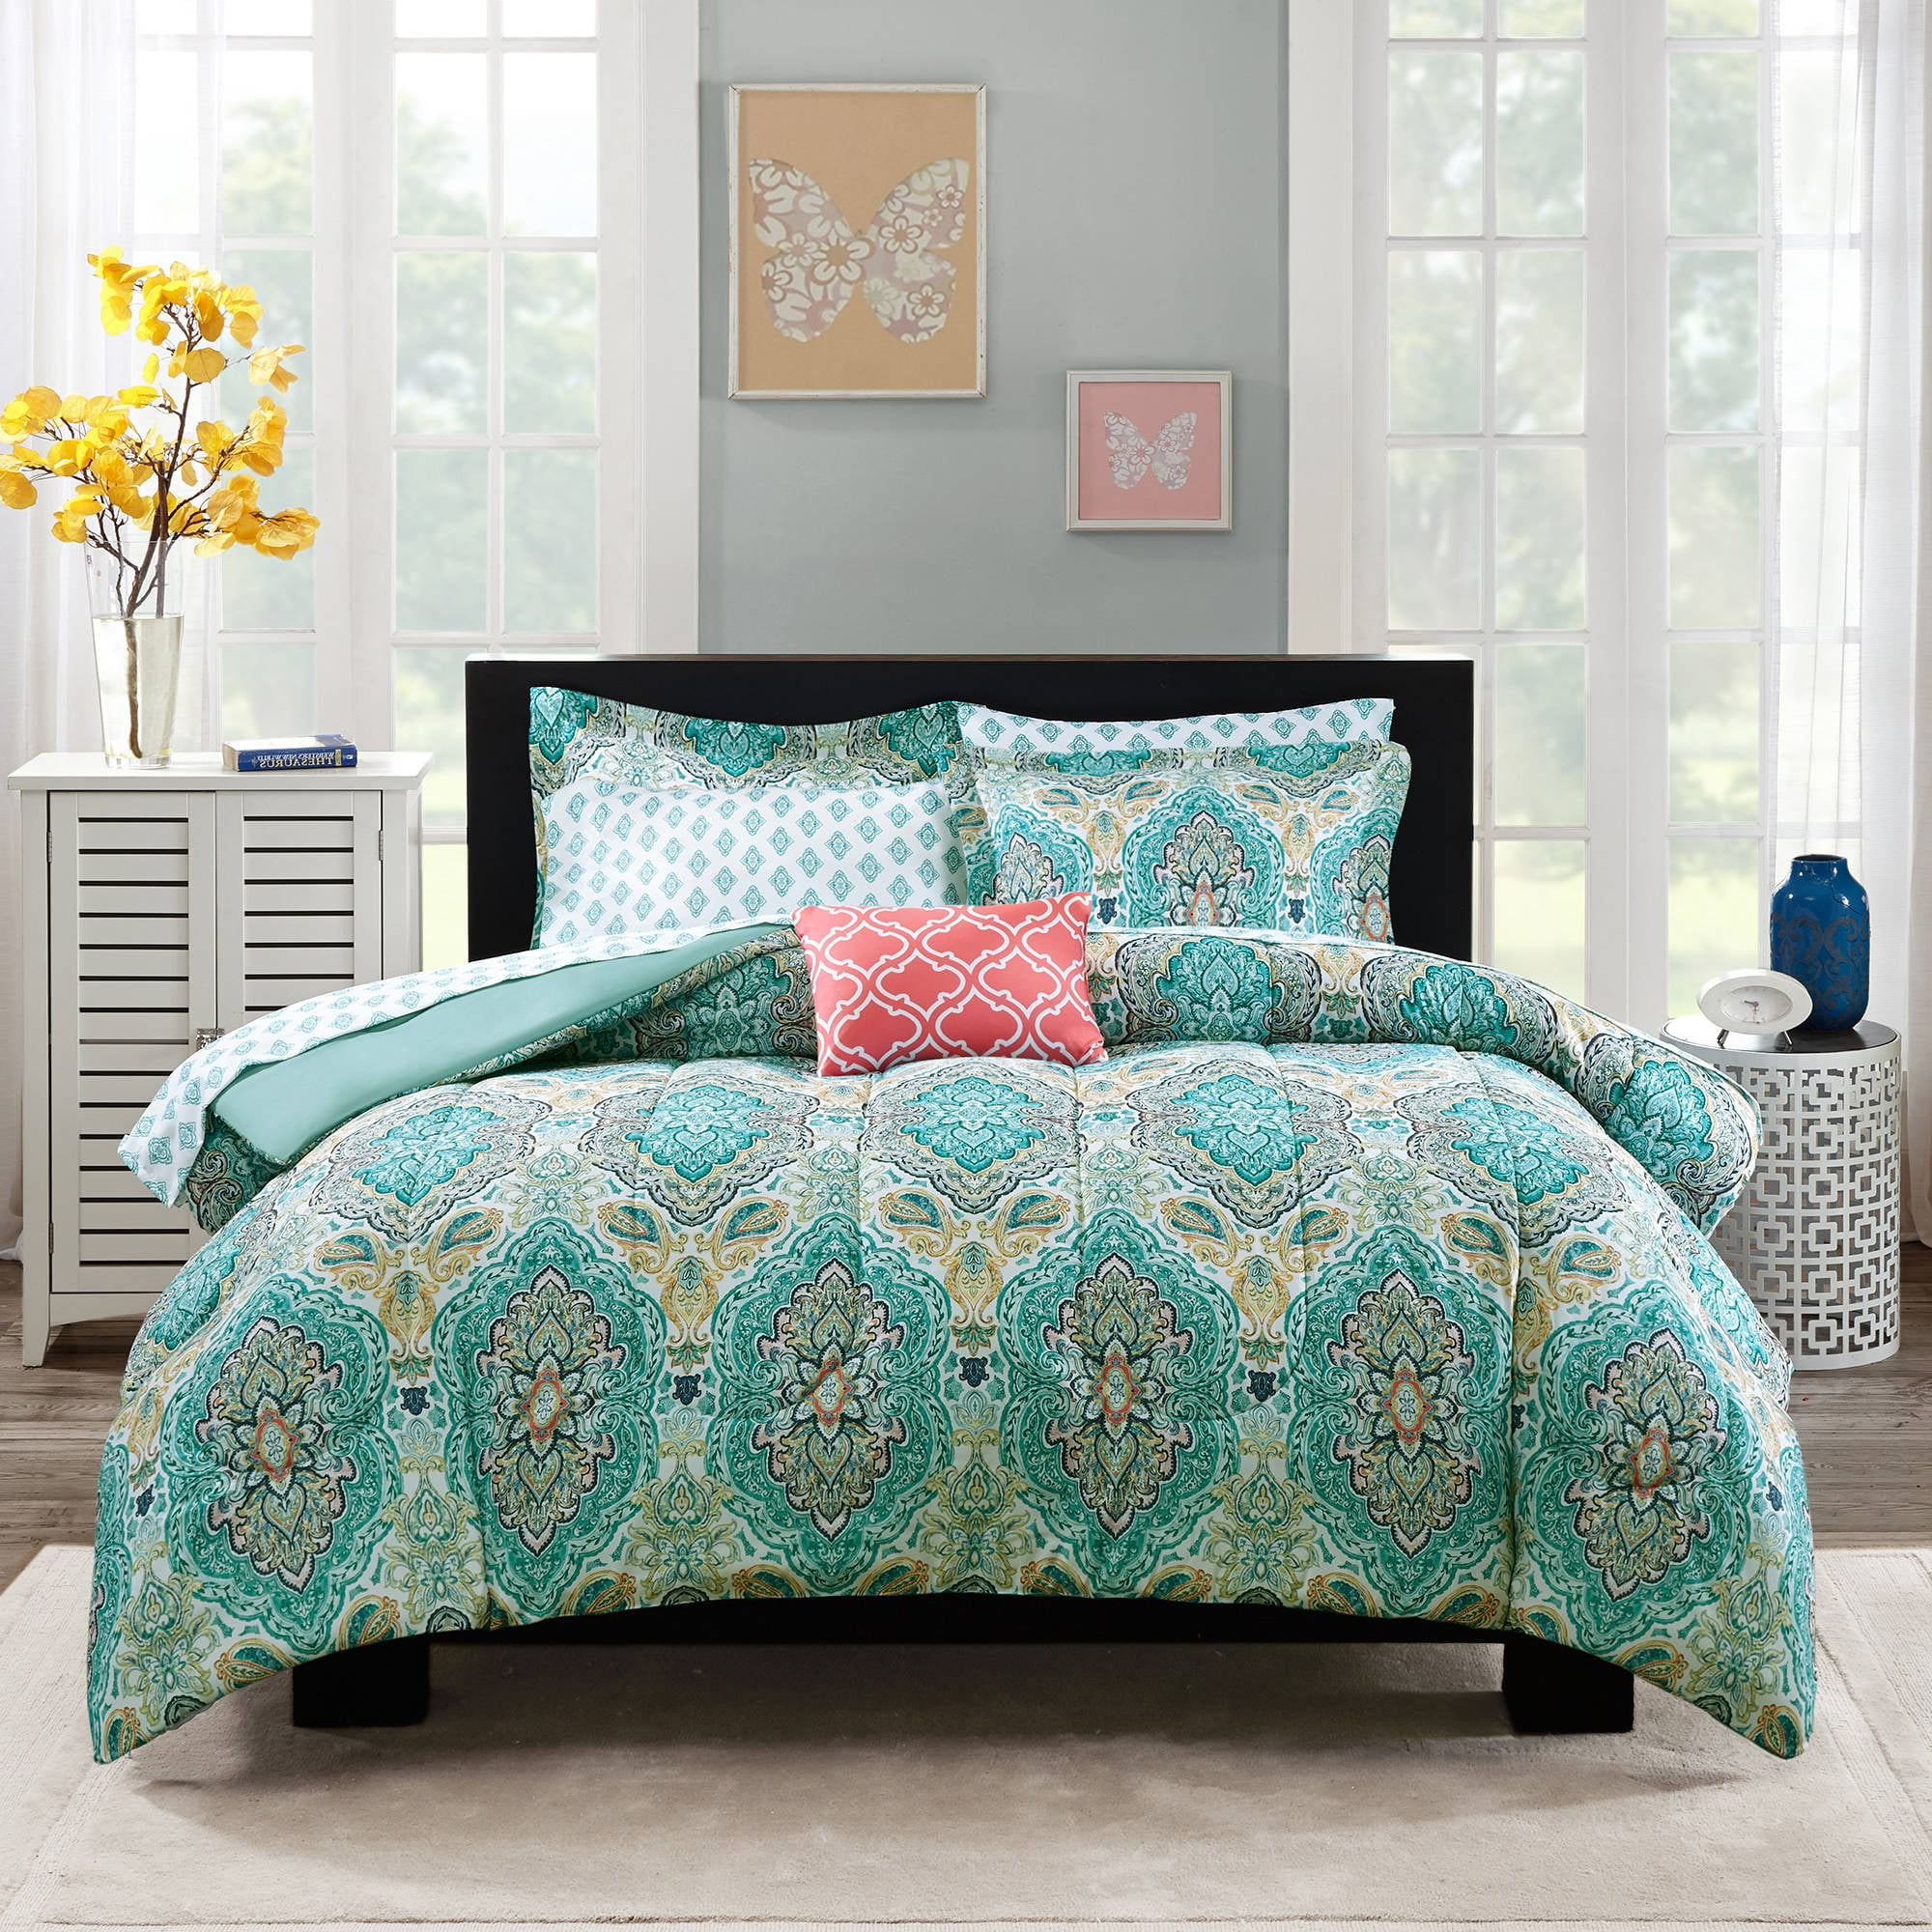 Bedding sets for teenage girls walmart - Bedding Sets For Teenage Girls Walmart 23